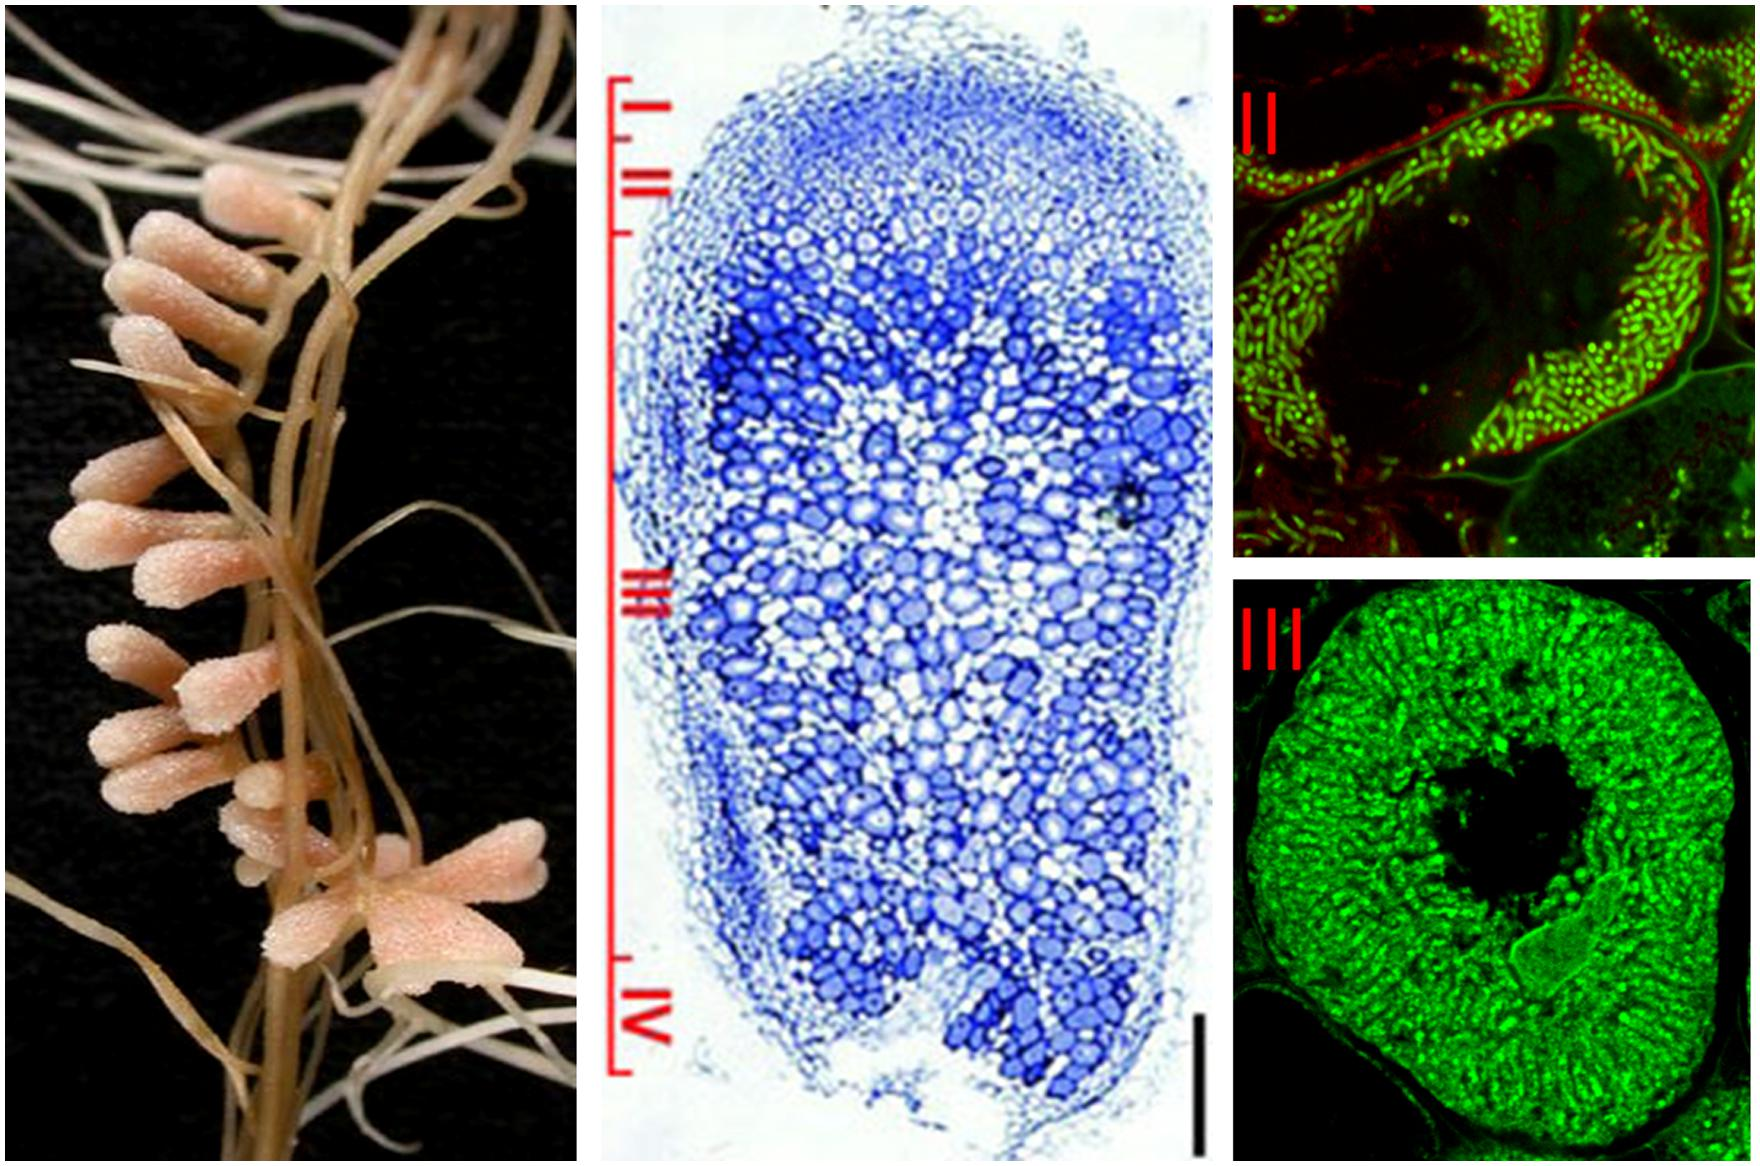 nitrogen fixing symbiotic bacteria Nitrogen fixation: nitrogen fixation  the symbiotic nitrogen-fixing bacteria invade the root hairs of host plants, where they multiply and stimulate the formation.